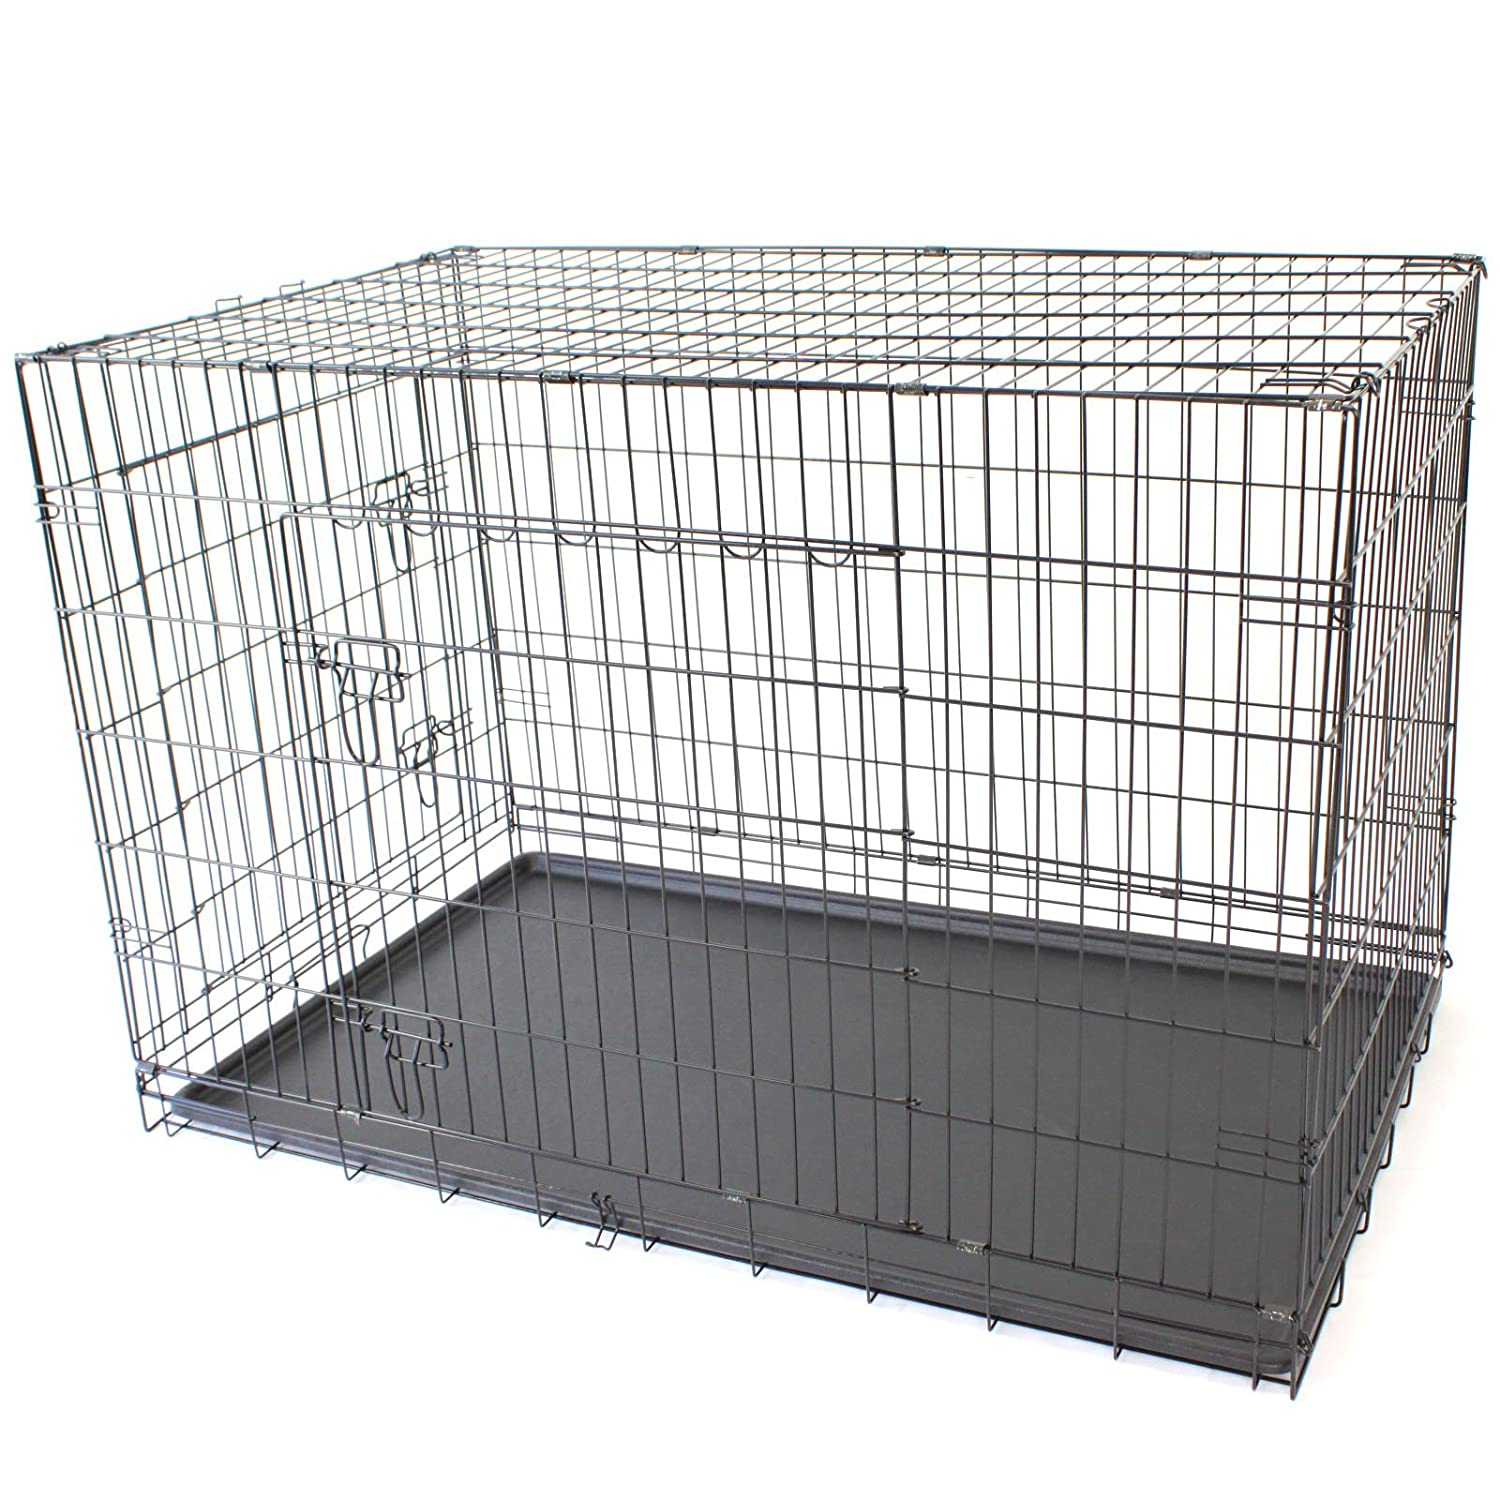 48  XXL Double X-Large Pet Dog Crate Metal Folding Cage Portable Kennel House Training Puppy Kitten Cat Rabbit